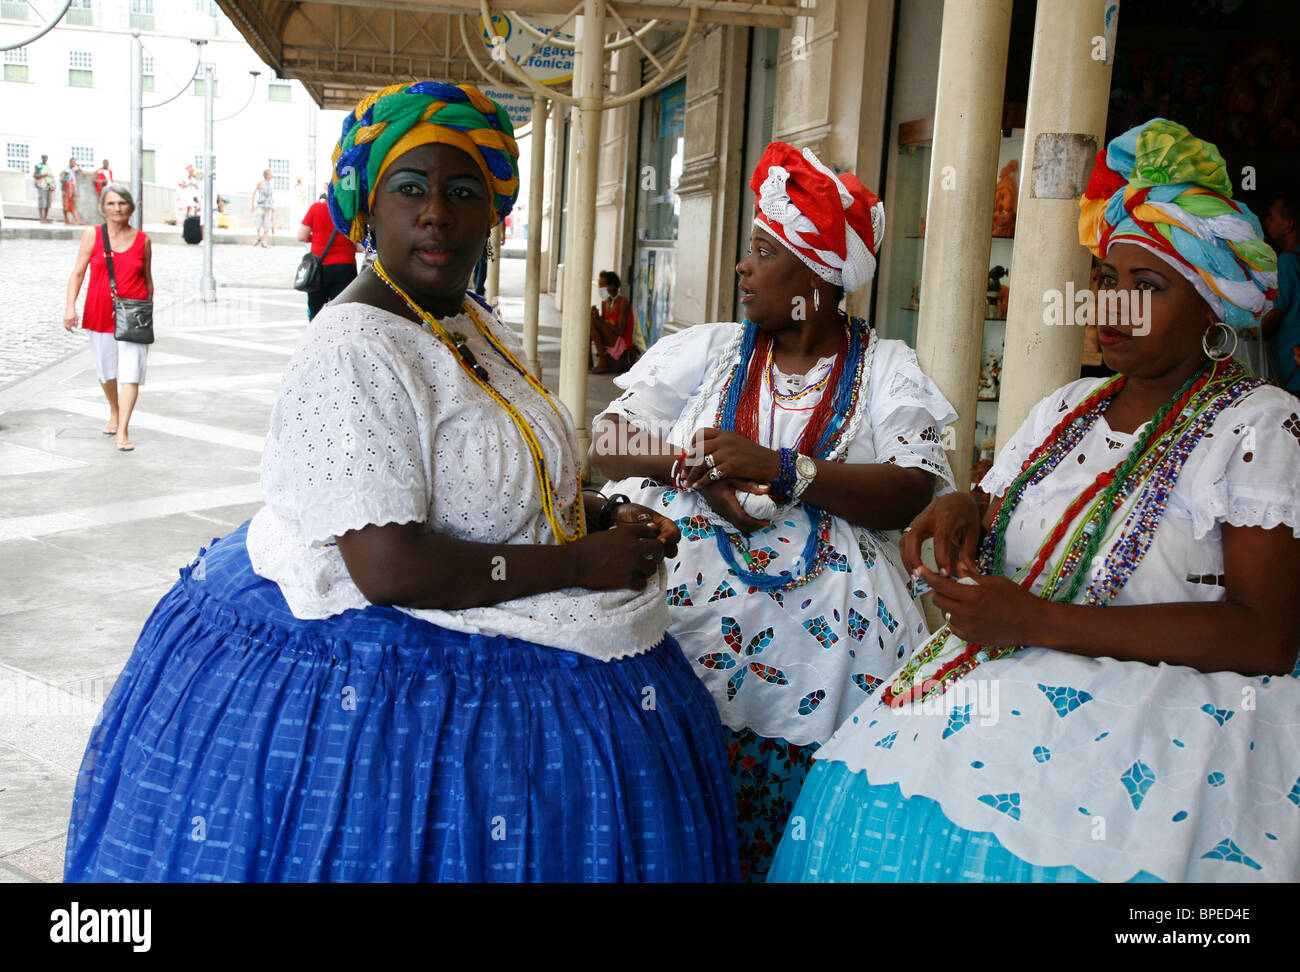 Bahian women in traditional dress, Salvador, Bahia, Brazil. - Stock Image